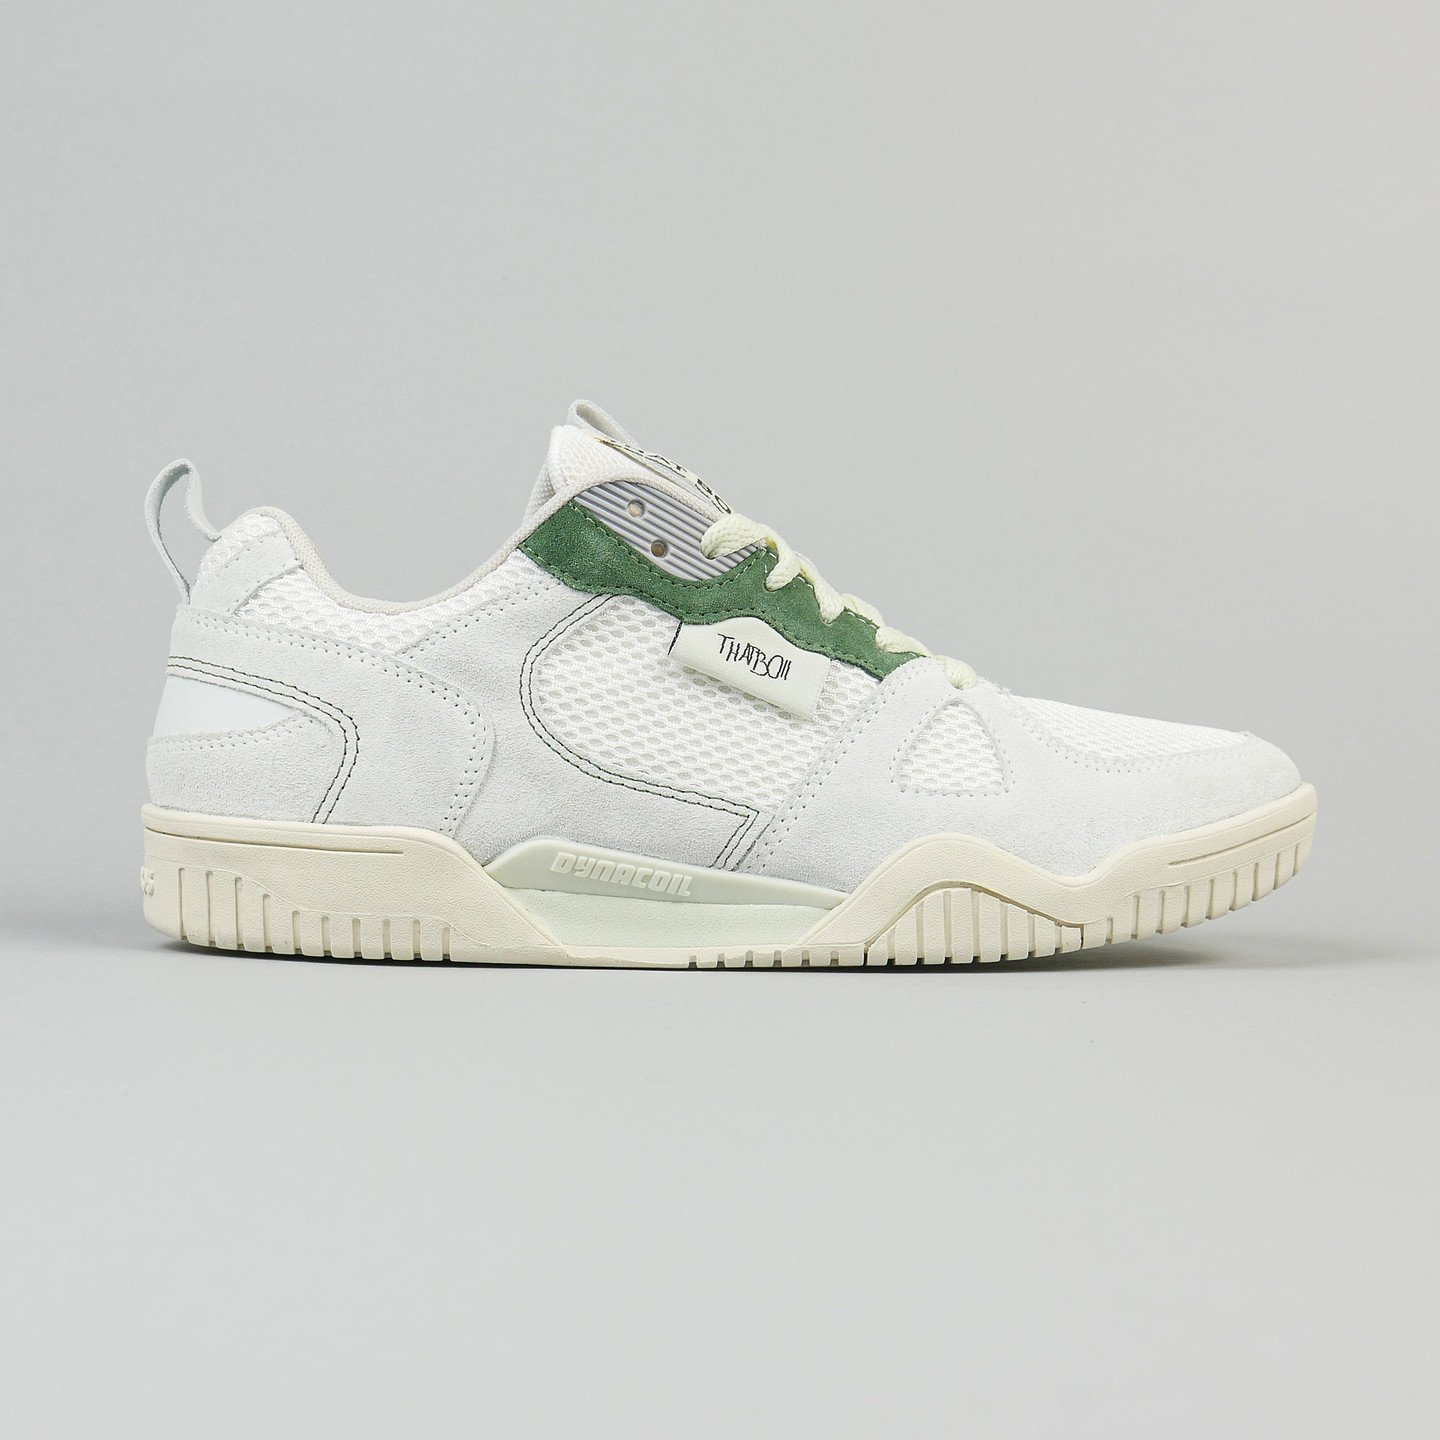 KangaROOS Ultralite x THATBOII 'Le Club' - Made in Germany Ivory White / Golf Green 4708T-0007